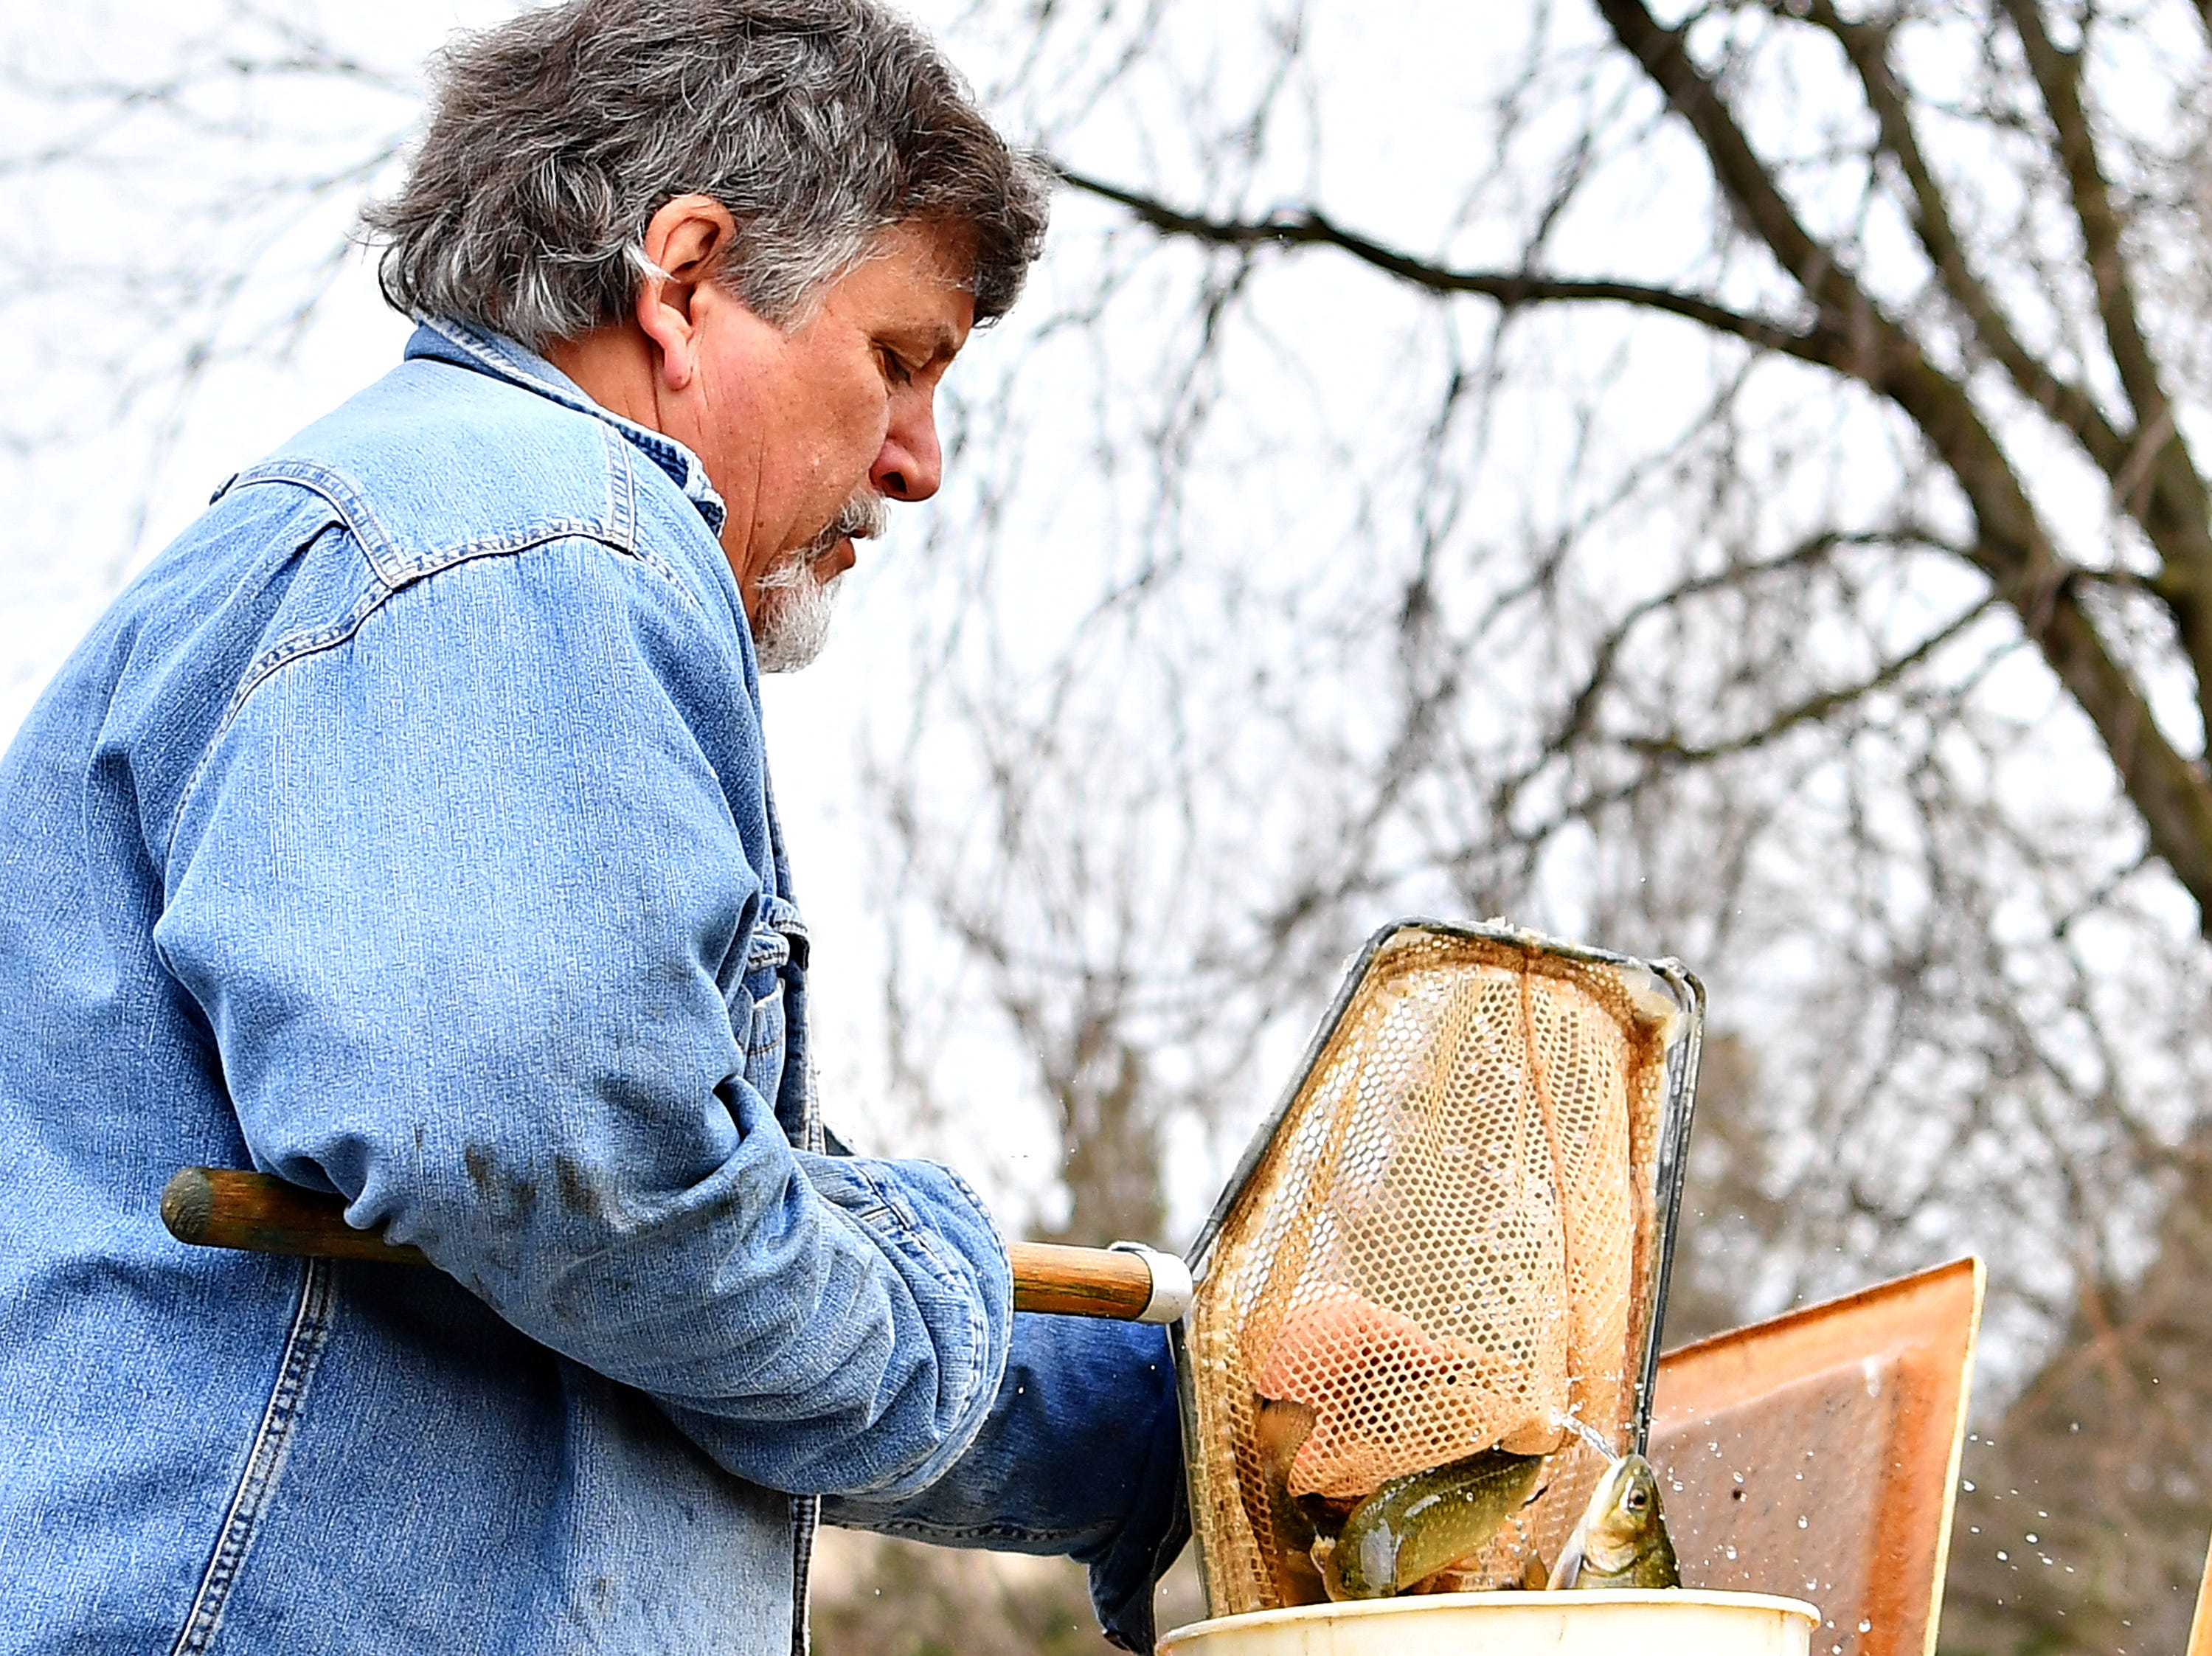 The 21st Annual William Shaffer Trout Fishing Derby at Kiwanis Lake in York City, Saturday, March 30, 2019. Dawn J. Sagert photo